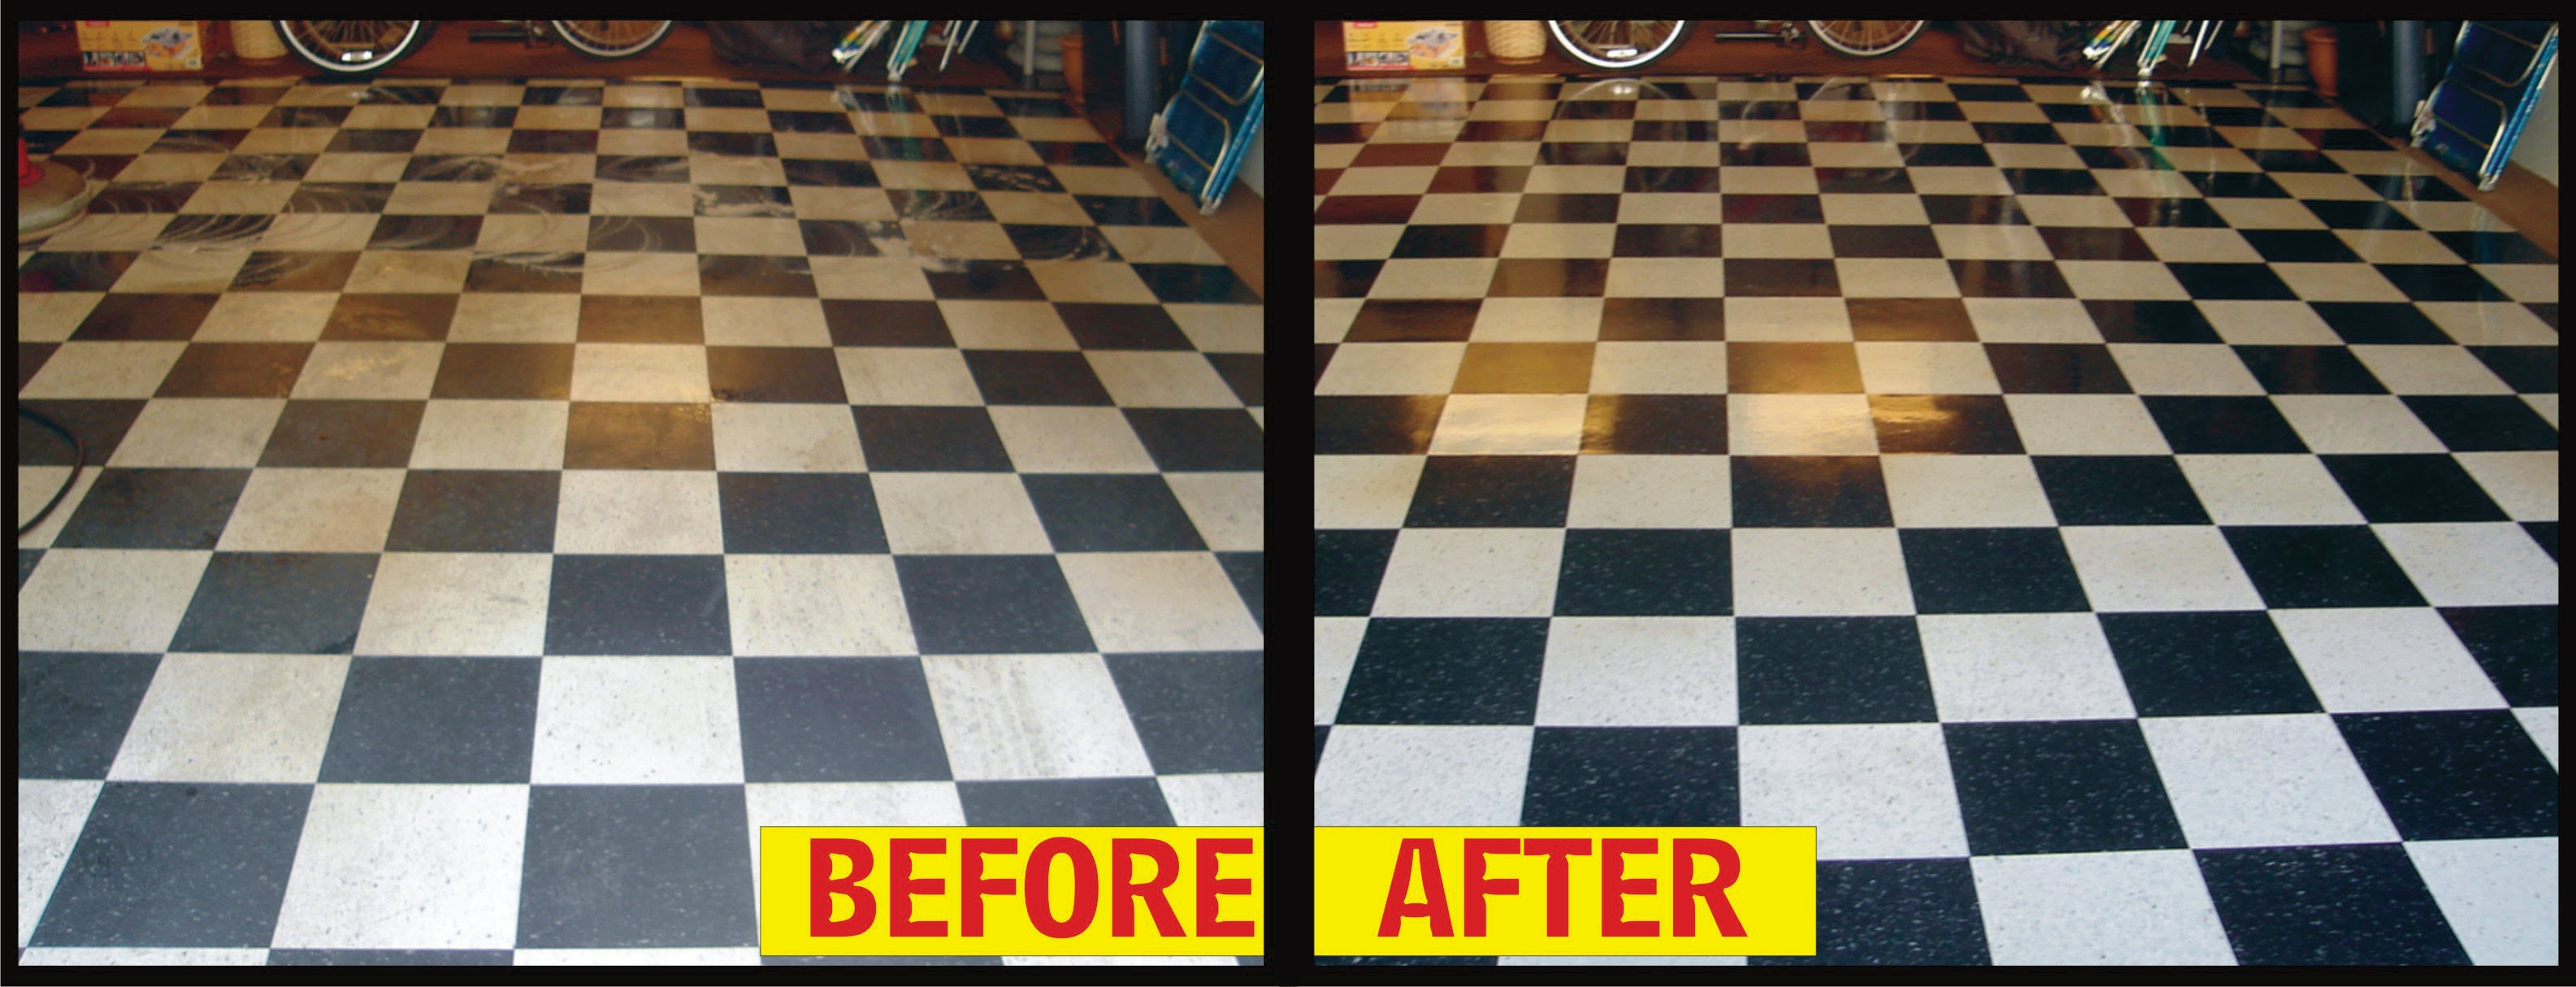 Linoleum Vinyl Tile Grout Cleaning Carpet Cleaner